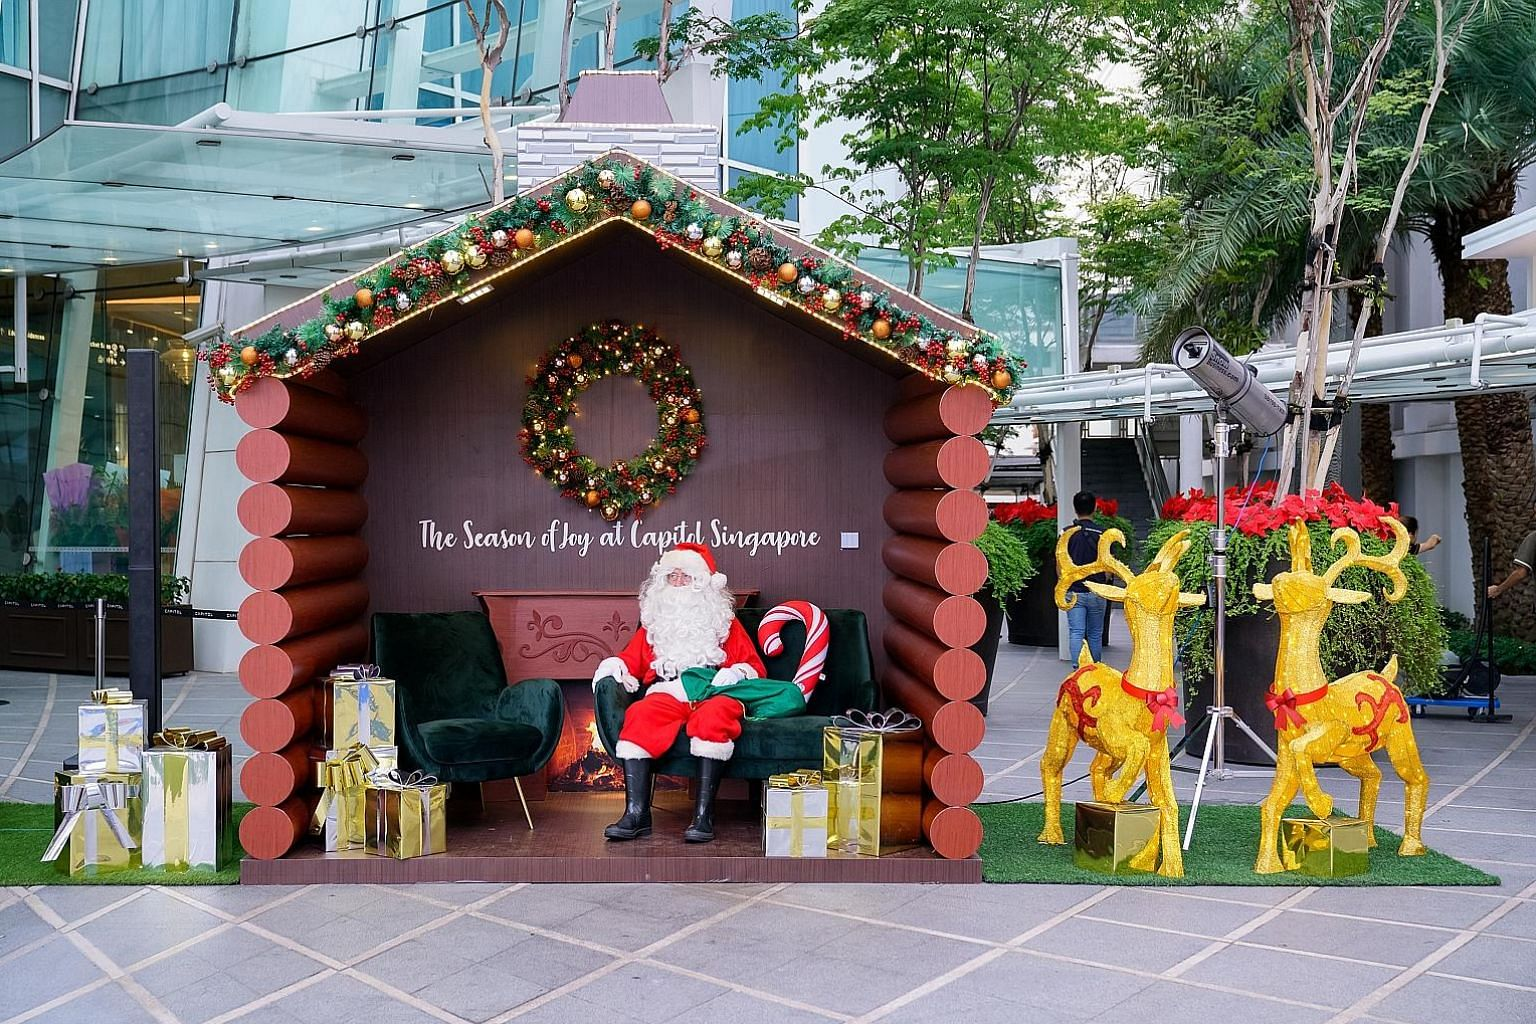 Above: Santa is waiting to greet you and your loved ones in the Santa log house at Capitol Kempinski. Right: The Capitol Kempinski Skating Rink is open to all for a small fee. PHOTOS: PERENNIAL REAL ESTATE HOLDINGS